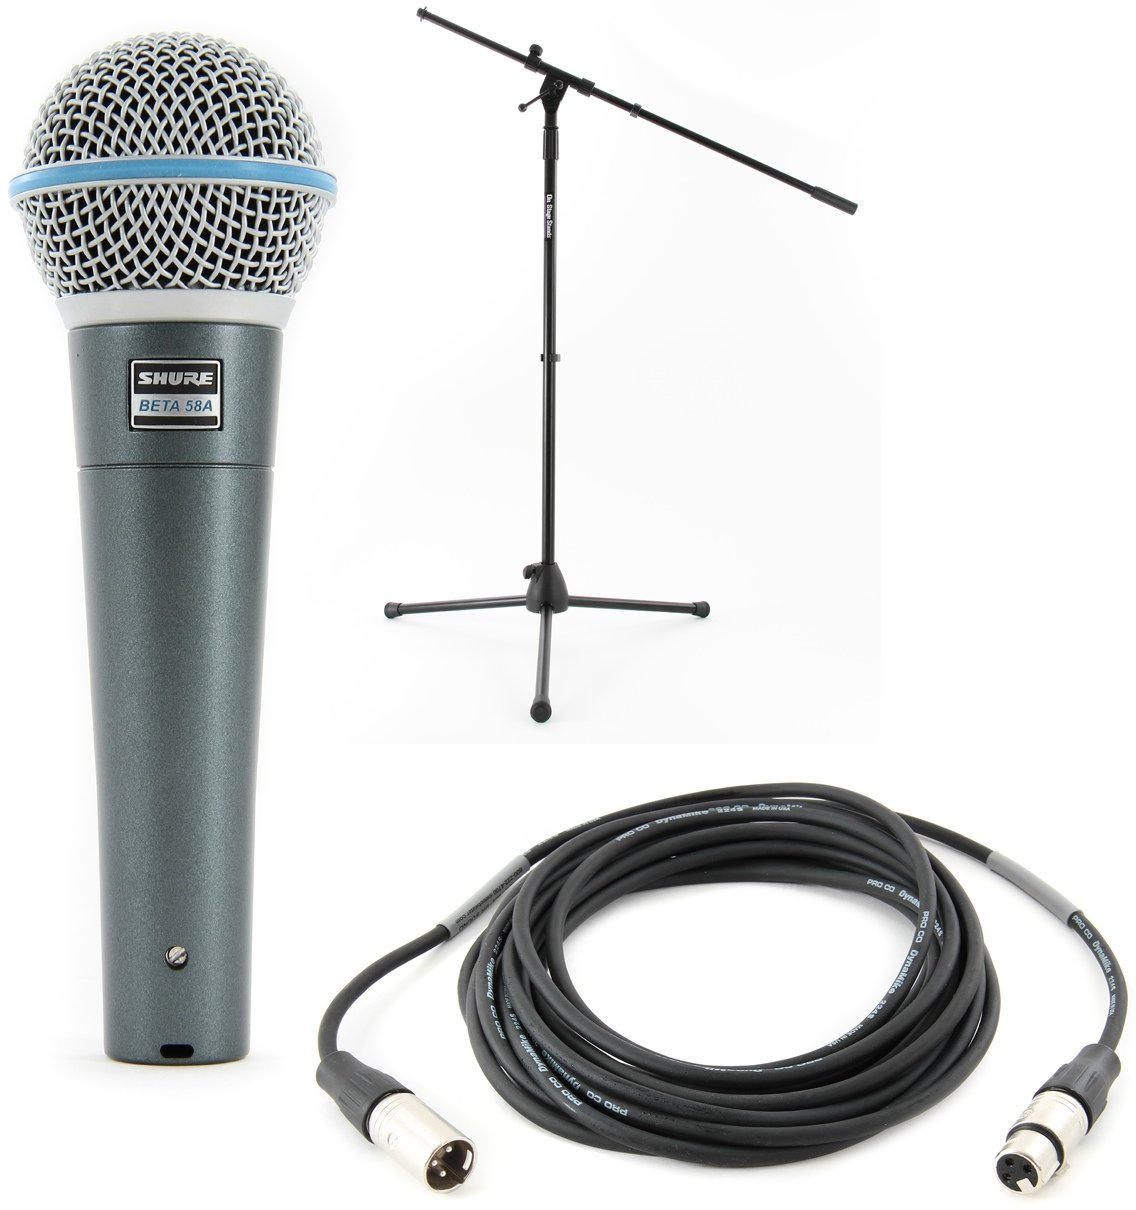 Shure Beta 58a With Stand Cable Mic Month Bundle Sweetwater Image 1